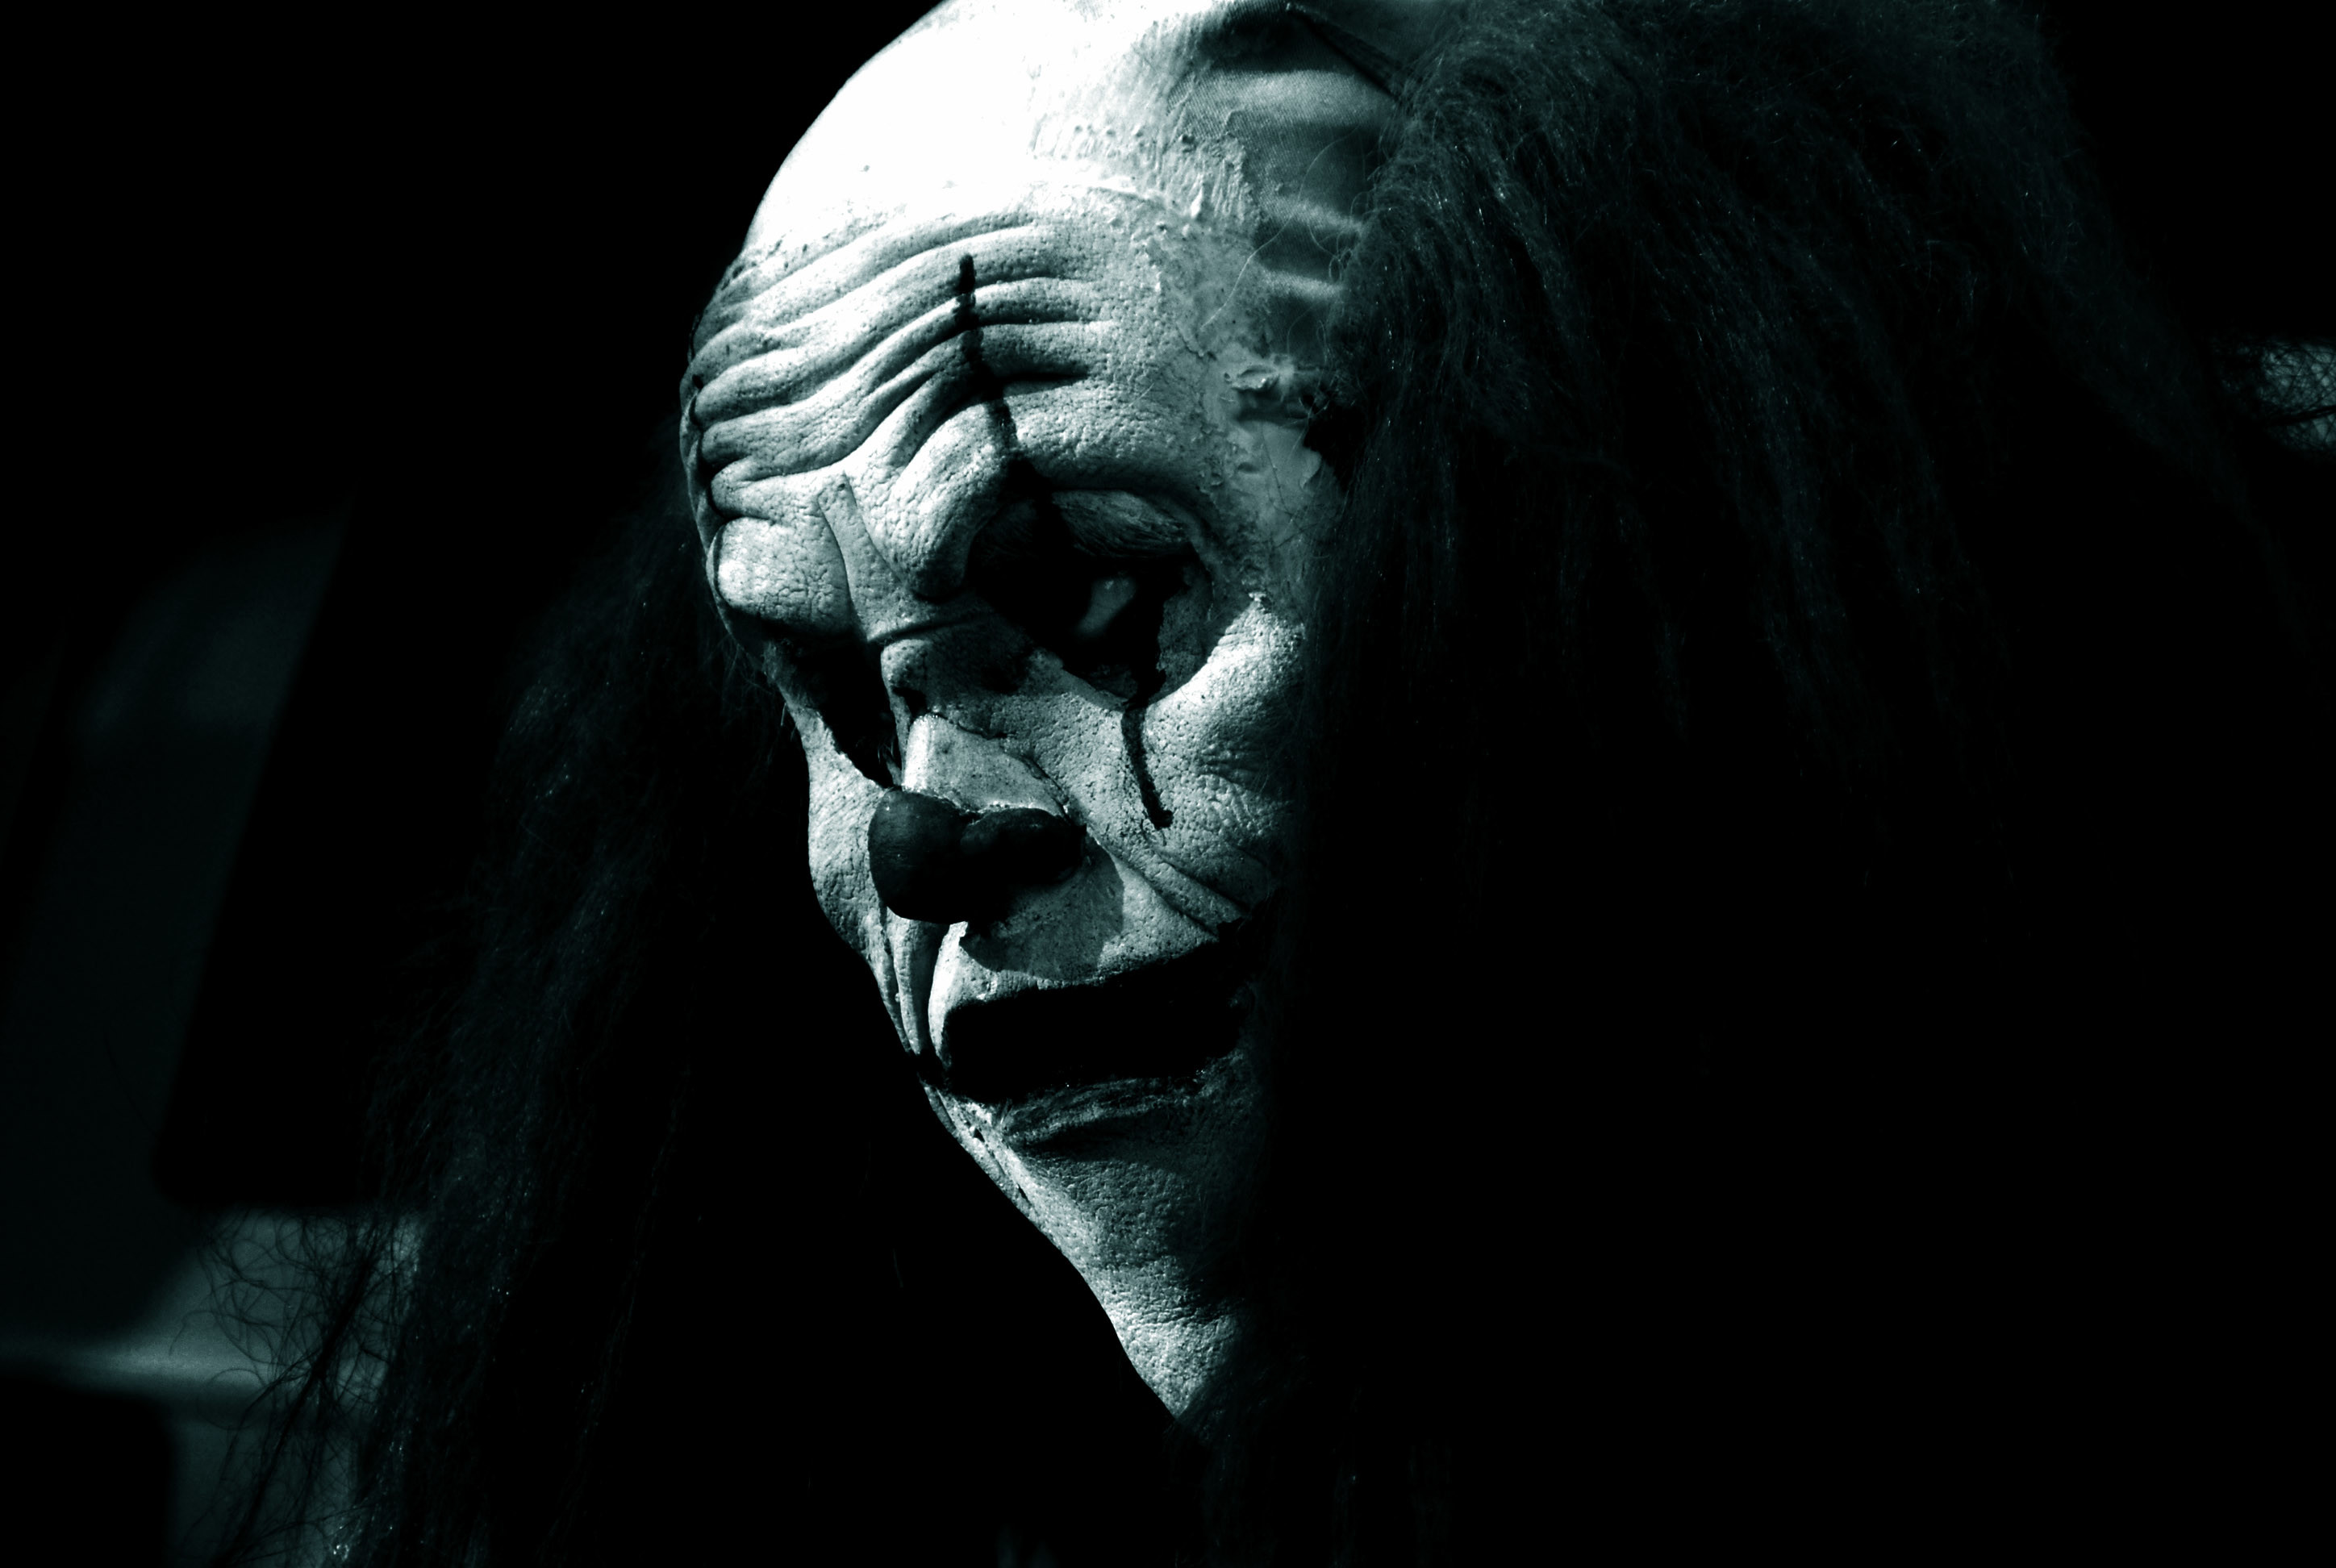 Clown Wallpaper From Clowns Wallpapers Killer Scary